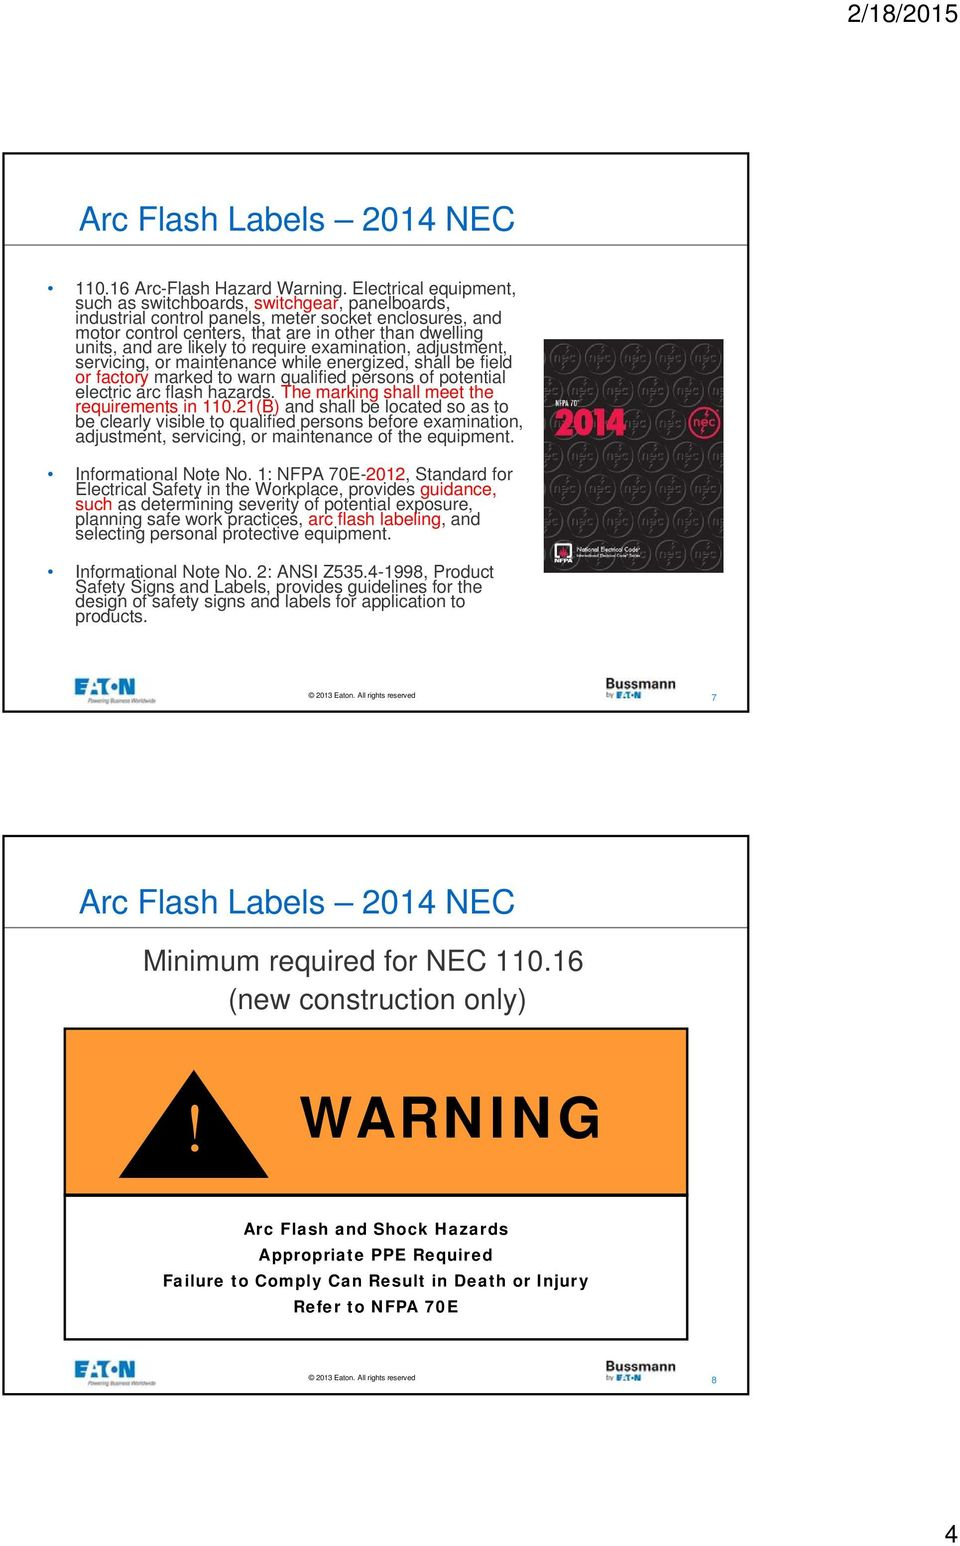 likely to require examination, adjustment, servicing, or maintenance while energized, shall be field or factory marked to warn qualified persons of potential electric arc flash hazards.